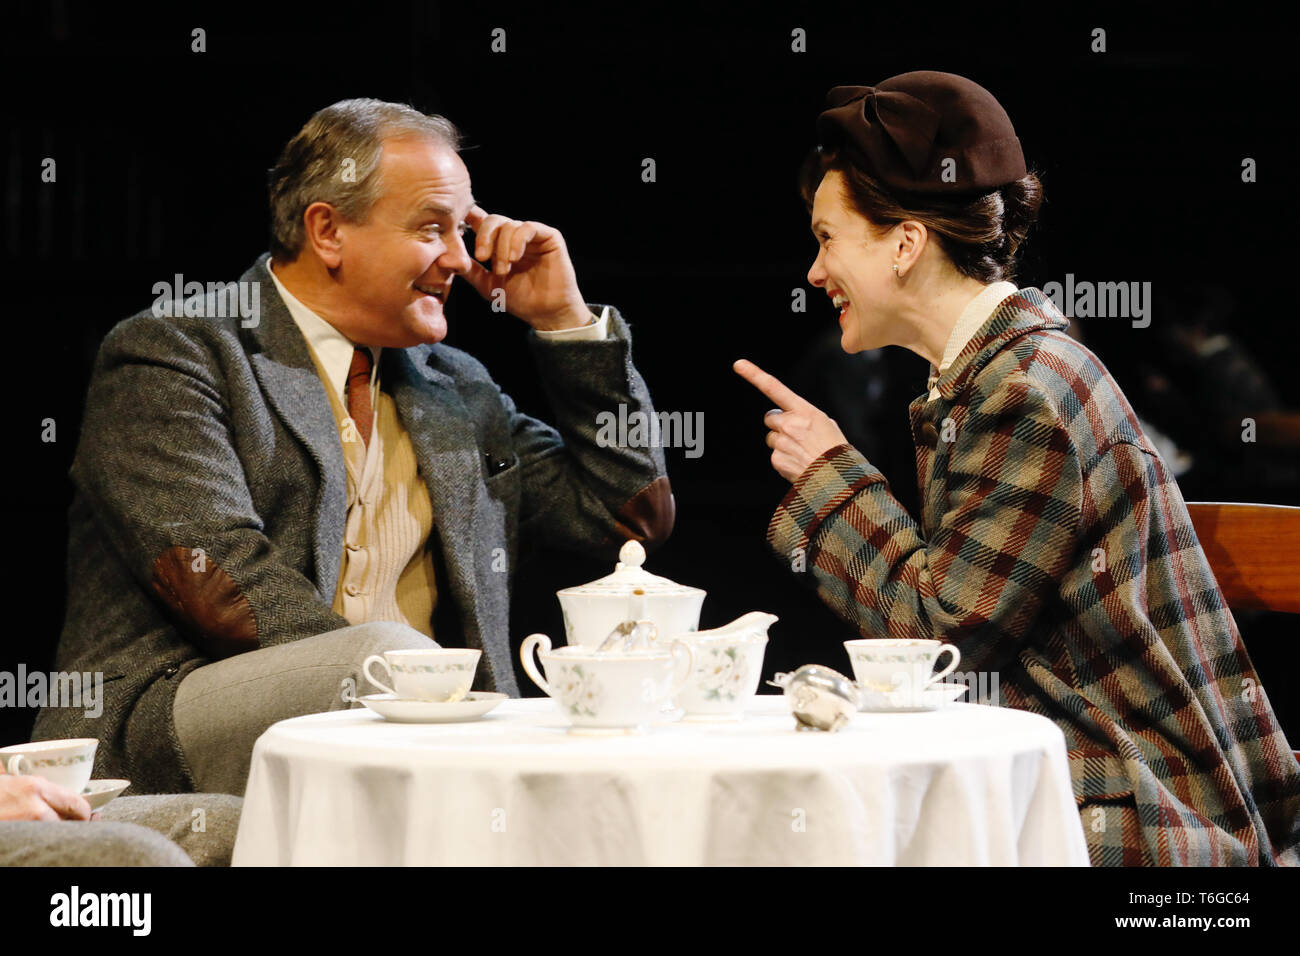 Chichester, UK. 1st May 2019. Hugh Bonneville (L) performs as C.S. Lewis, with Liz White (as Joy Gresham) during a photocall for William Nicholson's 'Shadowlands' at the Chichester Festival Theatre in West Sussex, UK Wednesday May, 1, 2019. The play, directed by Rachel Kavanaugh, runs until May 25. Photograph : Credit: Luke MacGregor/Alamy Live News - Stock Image